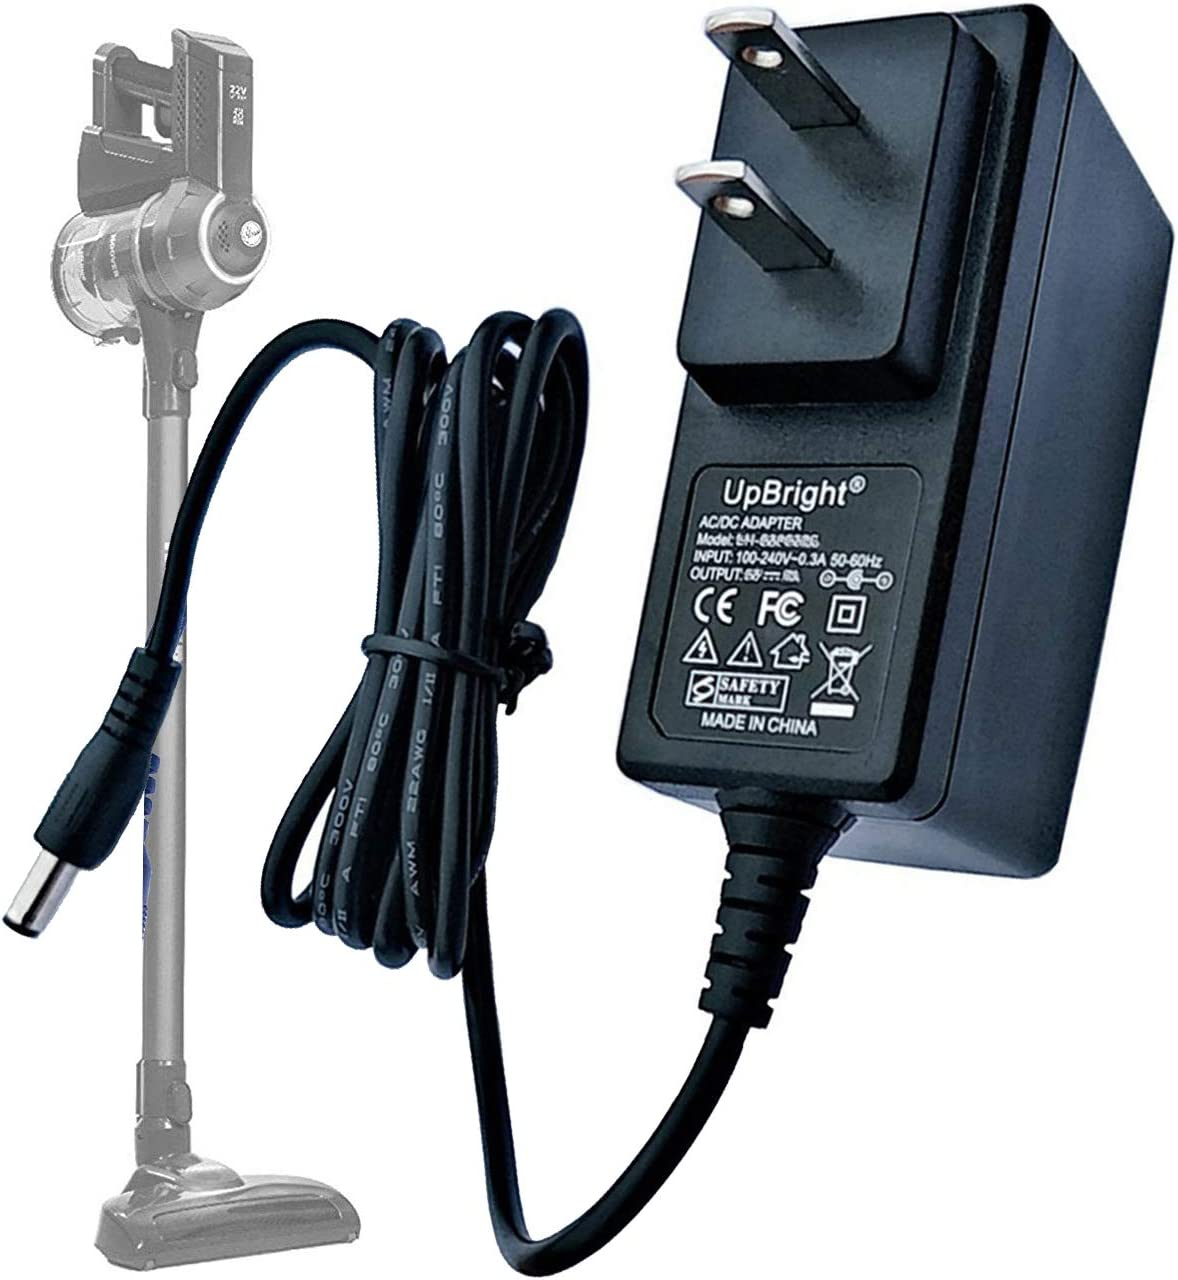 26V AC Adapter Compatible with Hoover 440009553 YLJXA-T260040 BH52210 BH52210CA BH52210PC BH52200 BH52212 Cruise 22 Volt Stick Vacuum YLS0121A-E260040 Freedom FD22BR FD22G FD22L FD22F Power